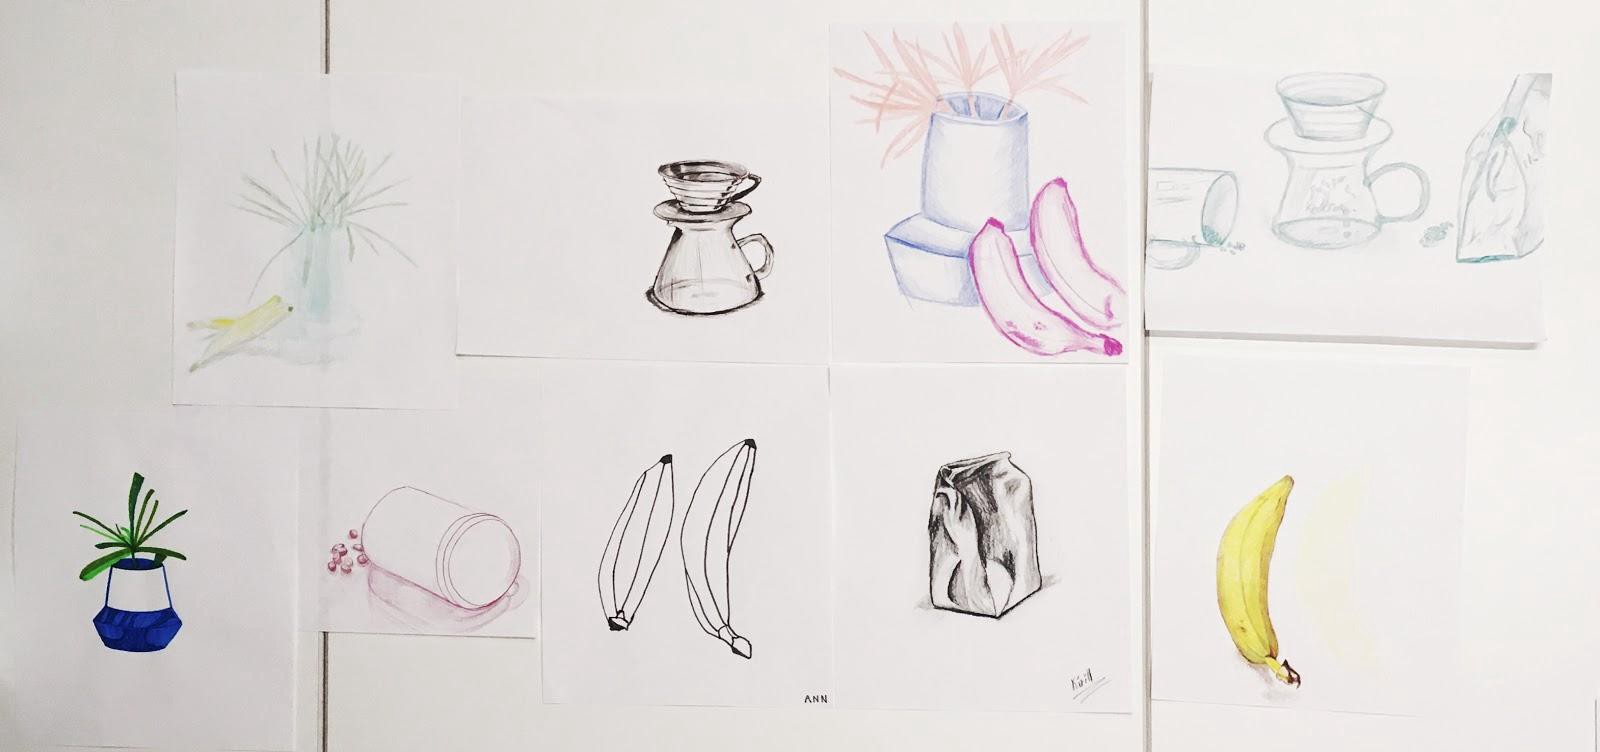 Selection of still-life sketches taped next to each other on an office whiteboard